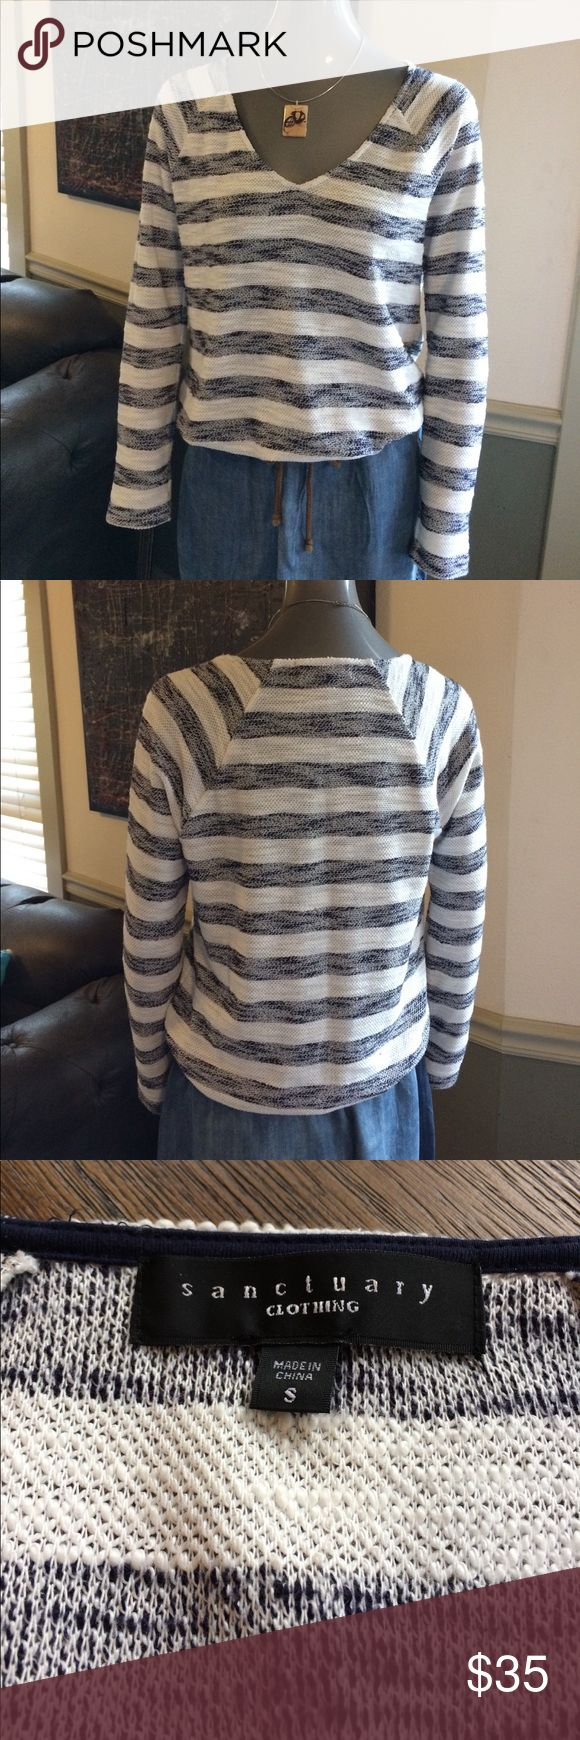 Sanctuary Anthropologie Striped Pullover Sweater EUC Sanctuary from Anthropologie striped pullover sweater. Navy & creamy white horizontal stripes. V-neck with thin elastic bottom. A very textured knit 83% Polyester / 17% Acrylic so it has a comfy stretch. Anthropologie Sweaters V-Necks